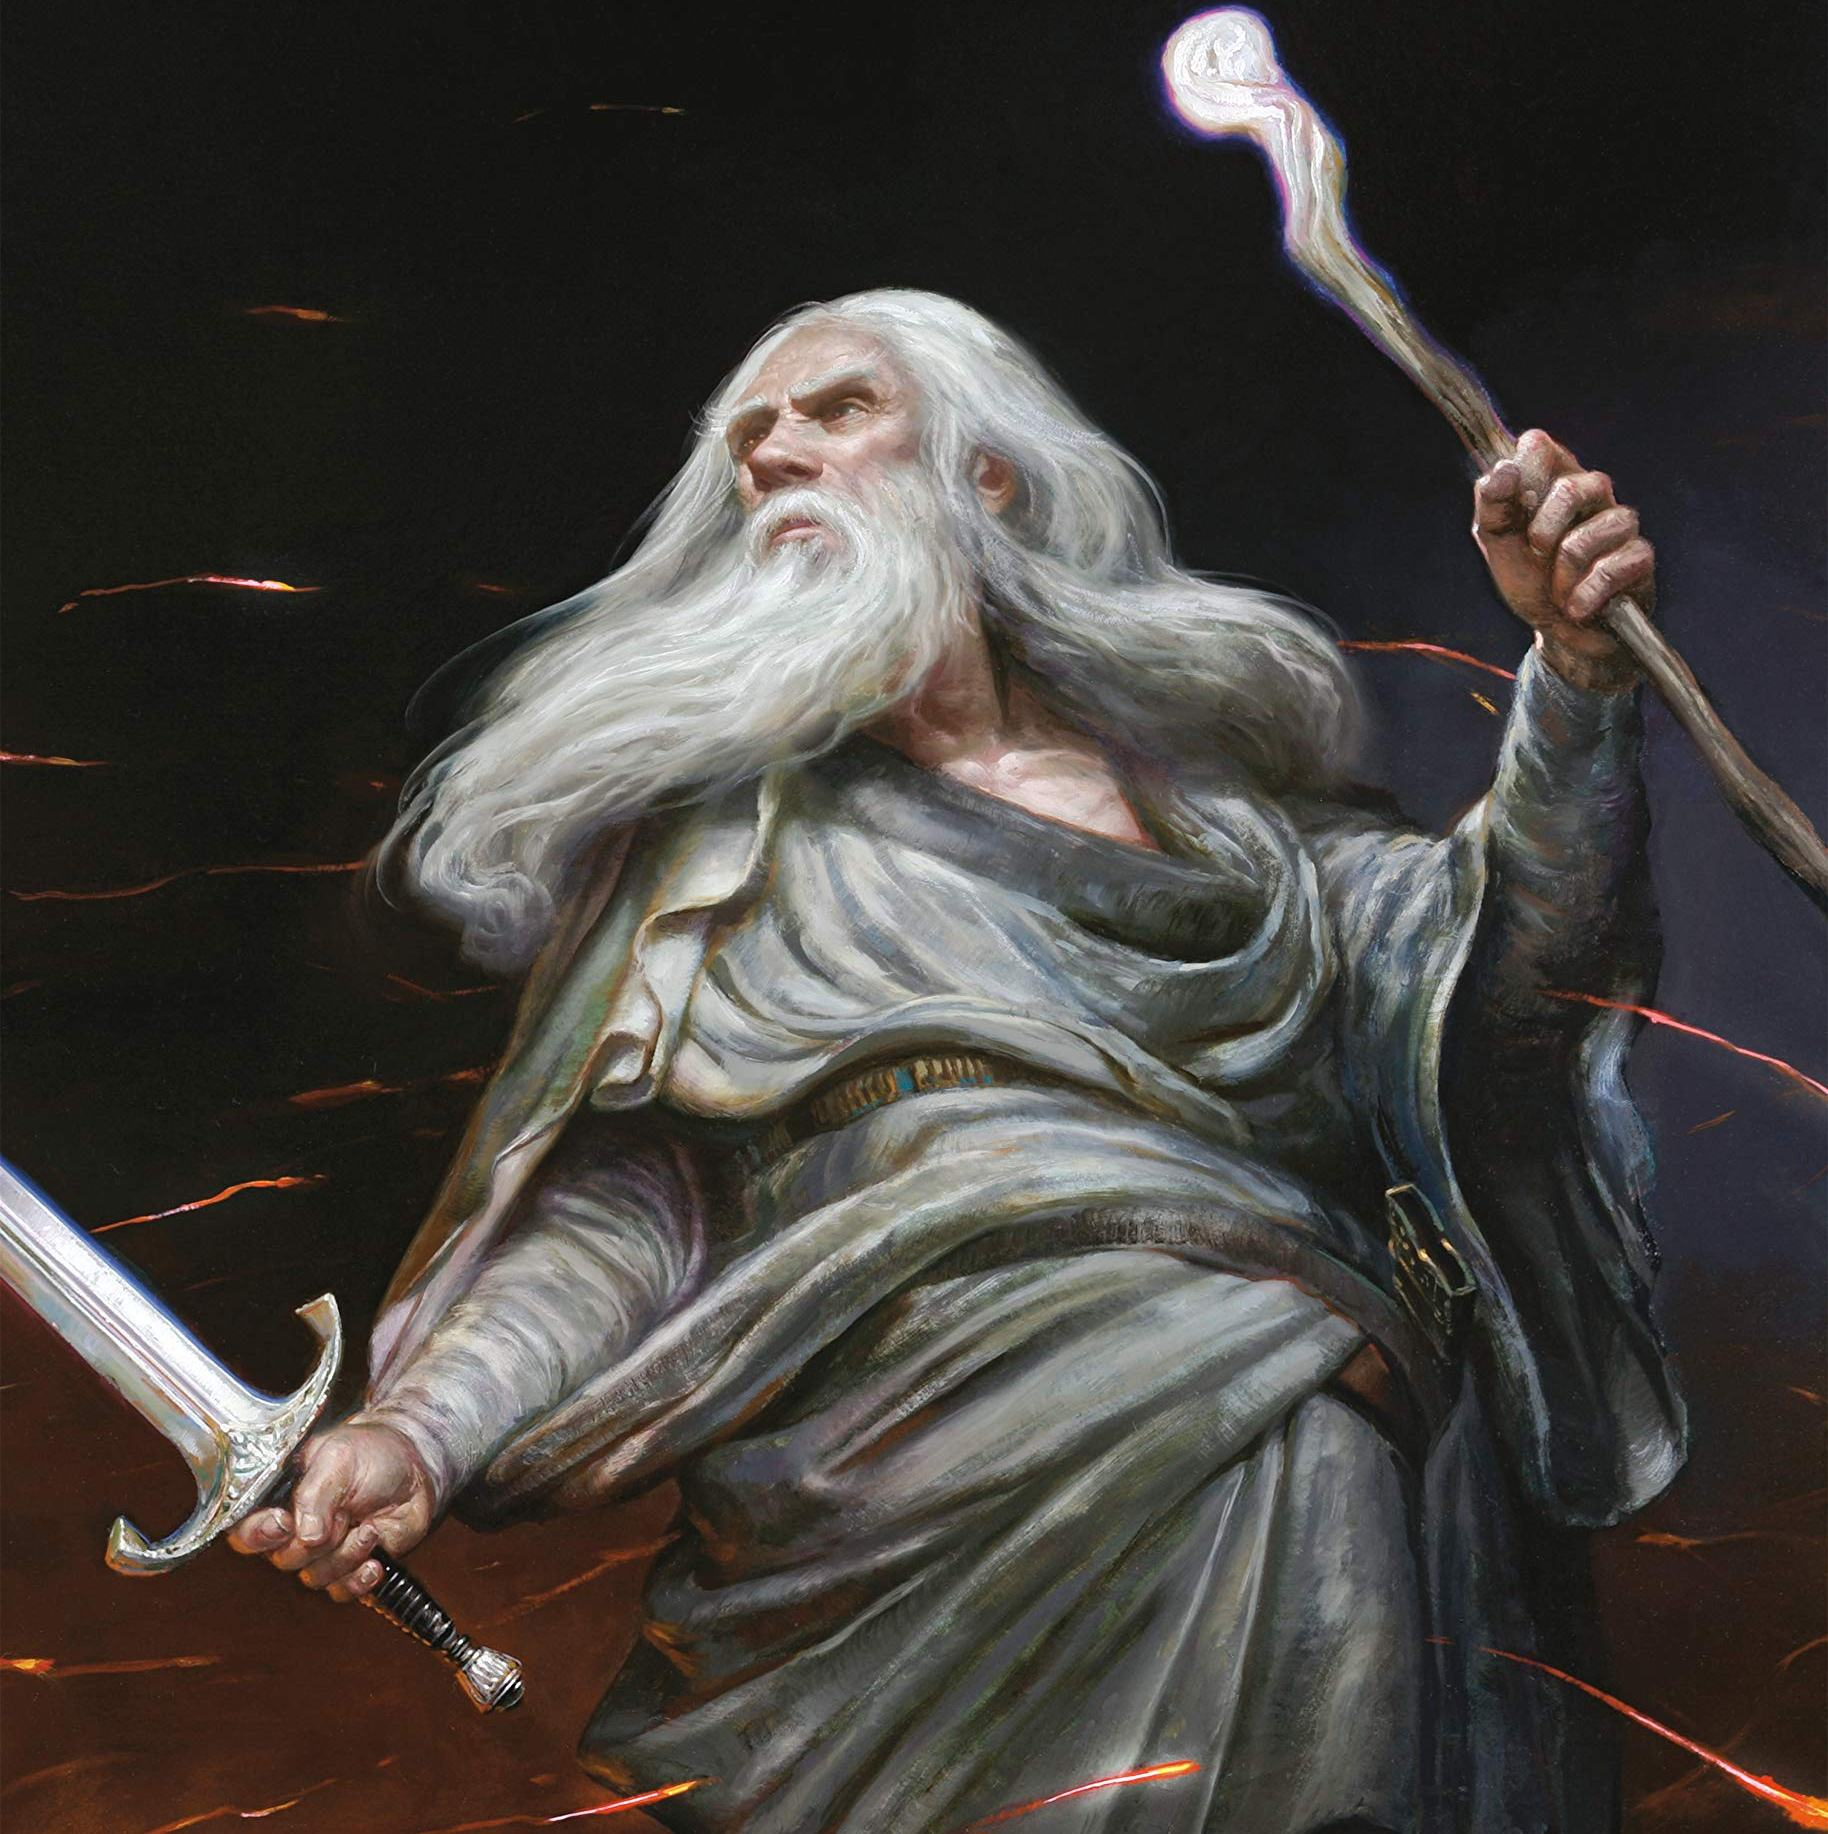 Middle Earth: Journeys in Myths and Legend review